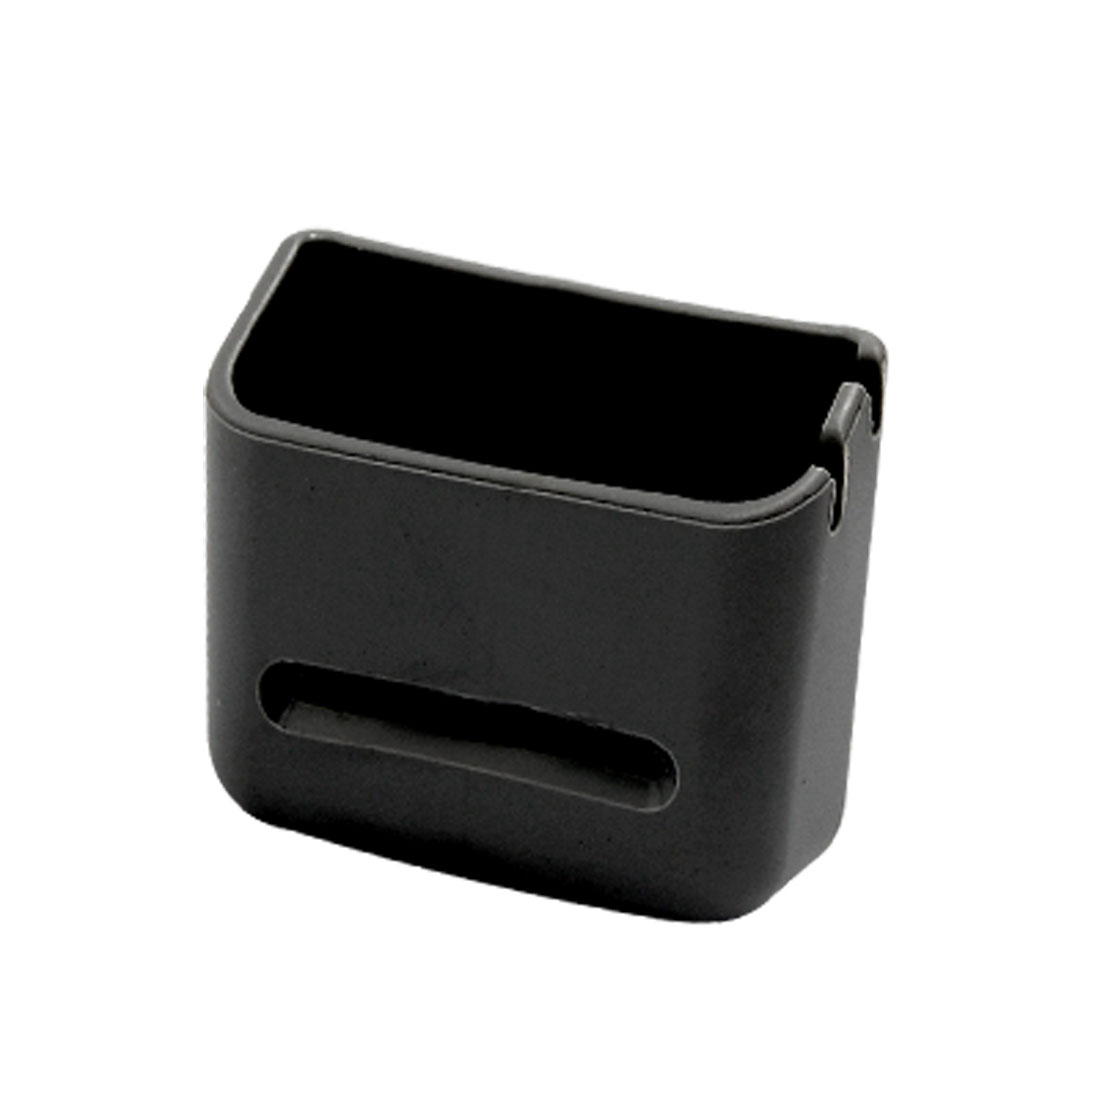 Dark Gray Cigarette Box Mobilephone Holder Bracket for Car Auto